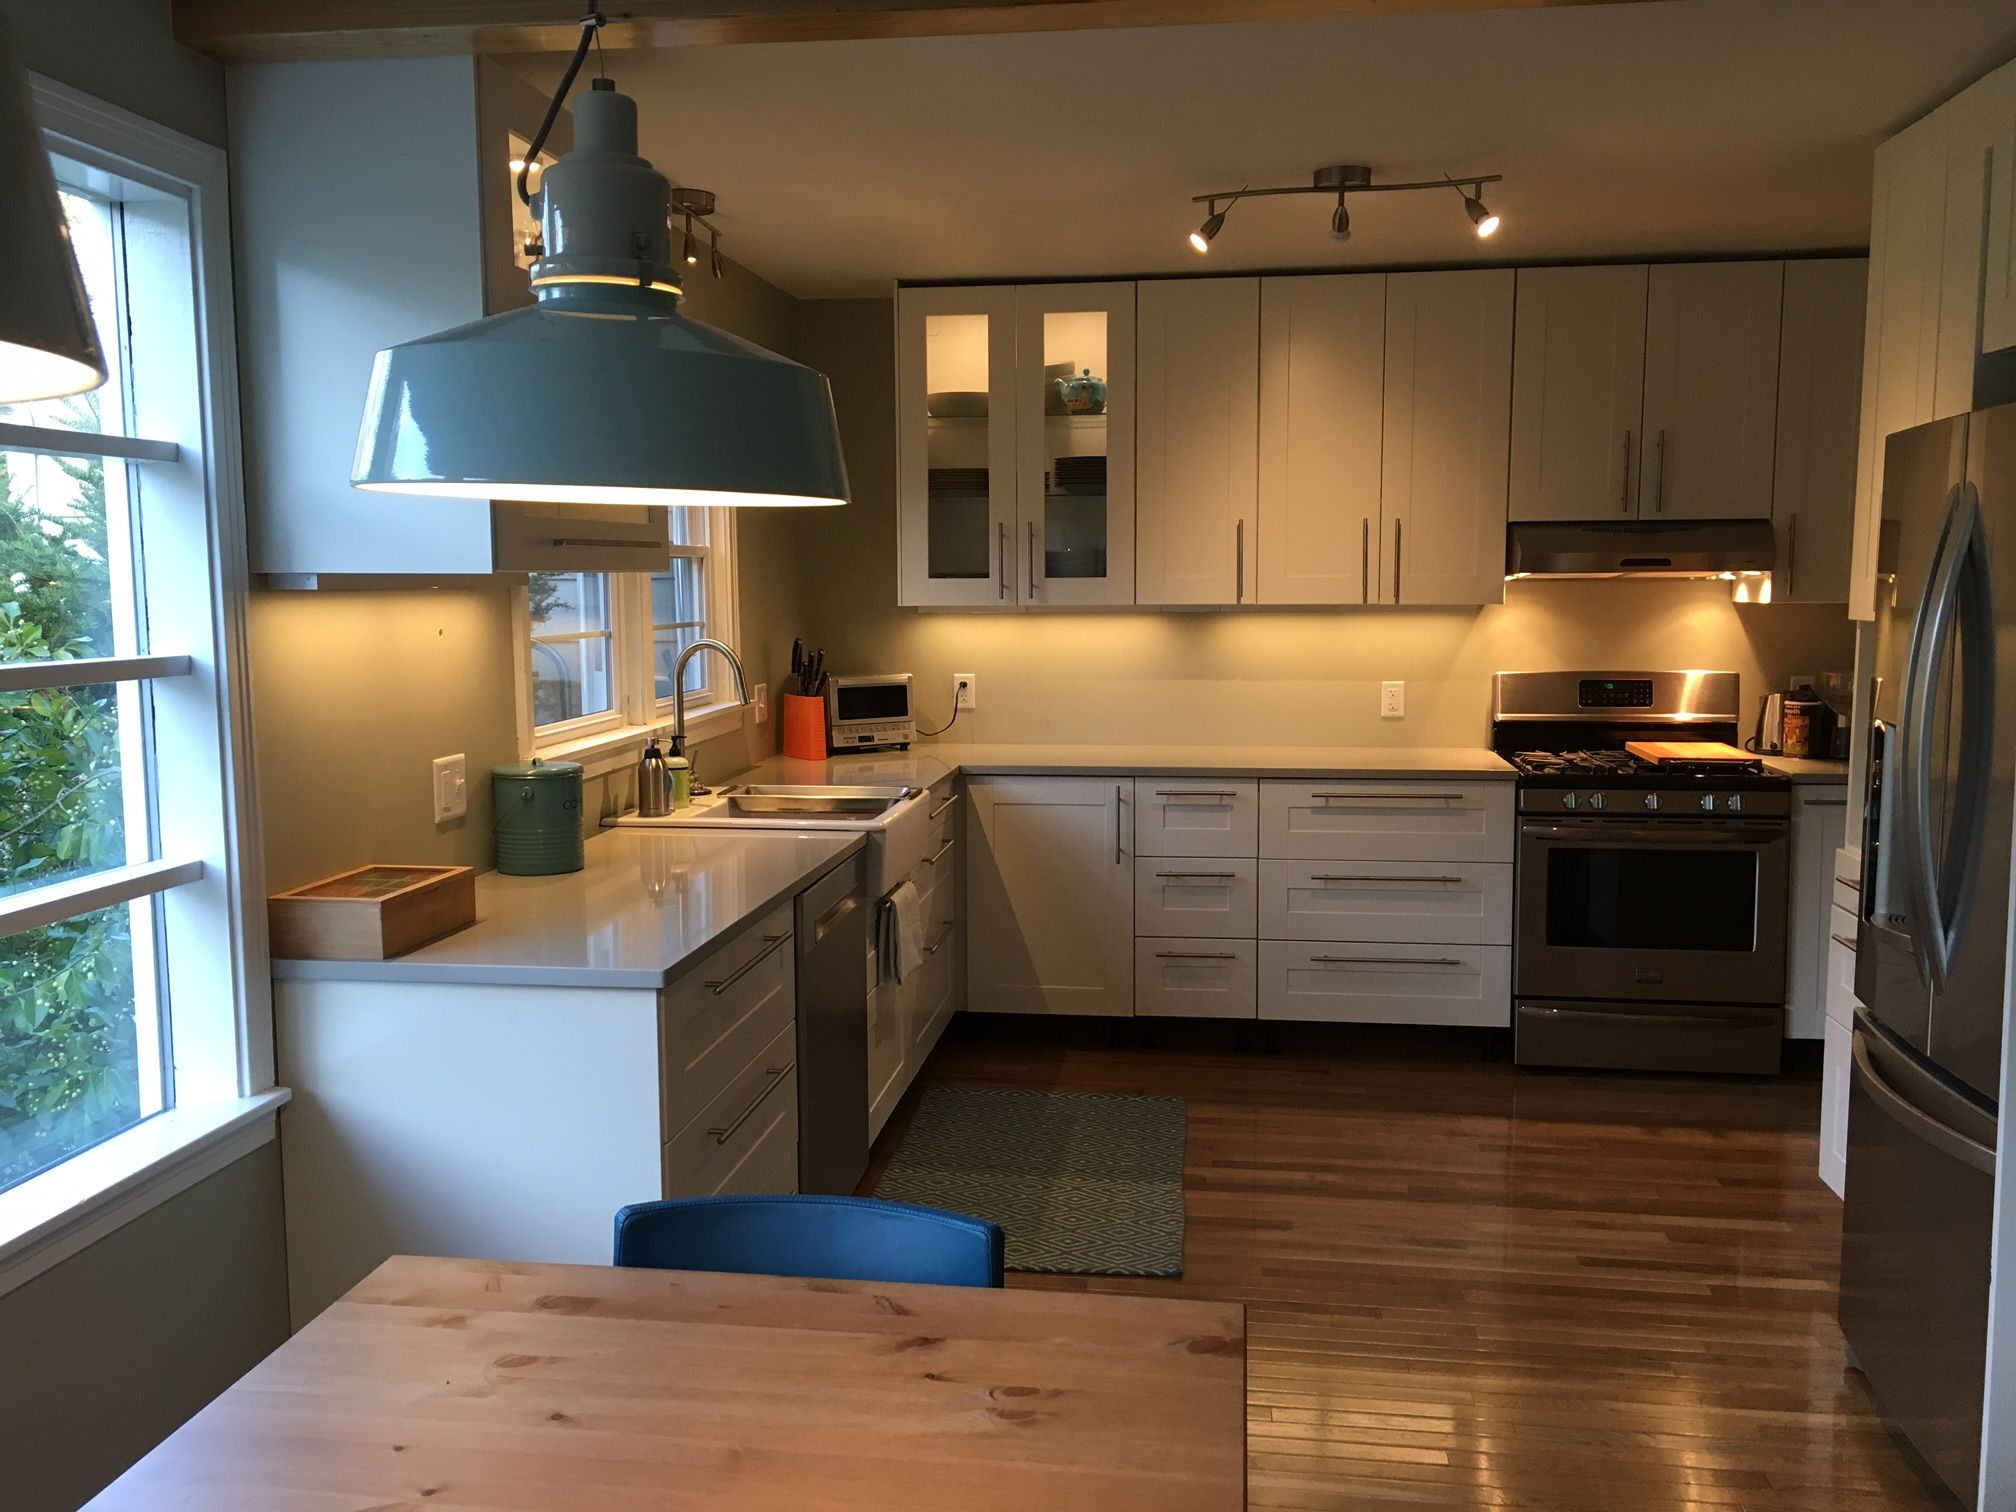 A Gorgeous Modern Ikea Kitchen Renovation In Upstate New